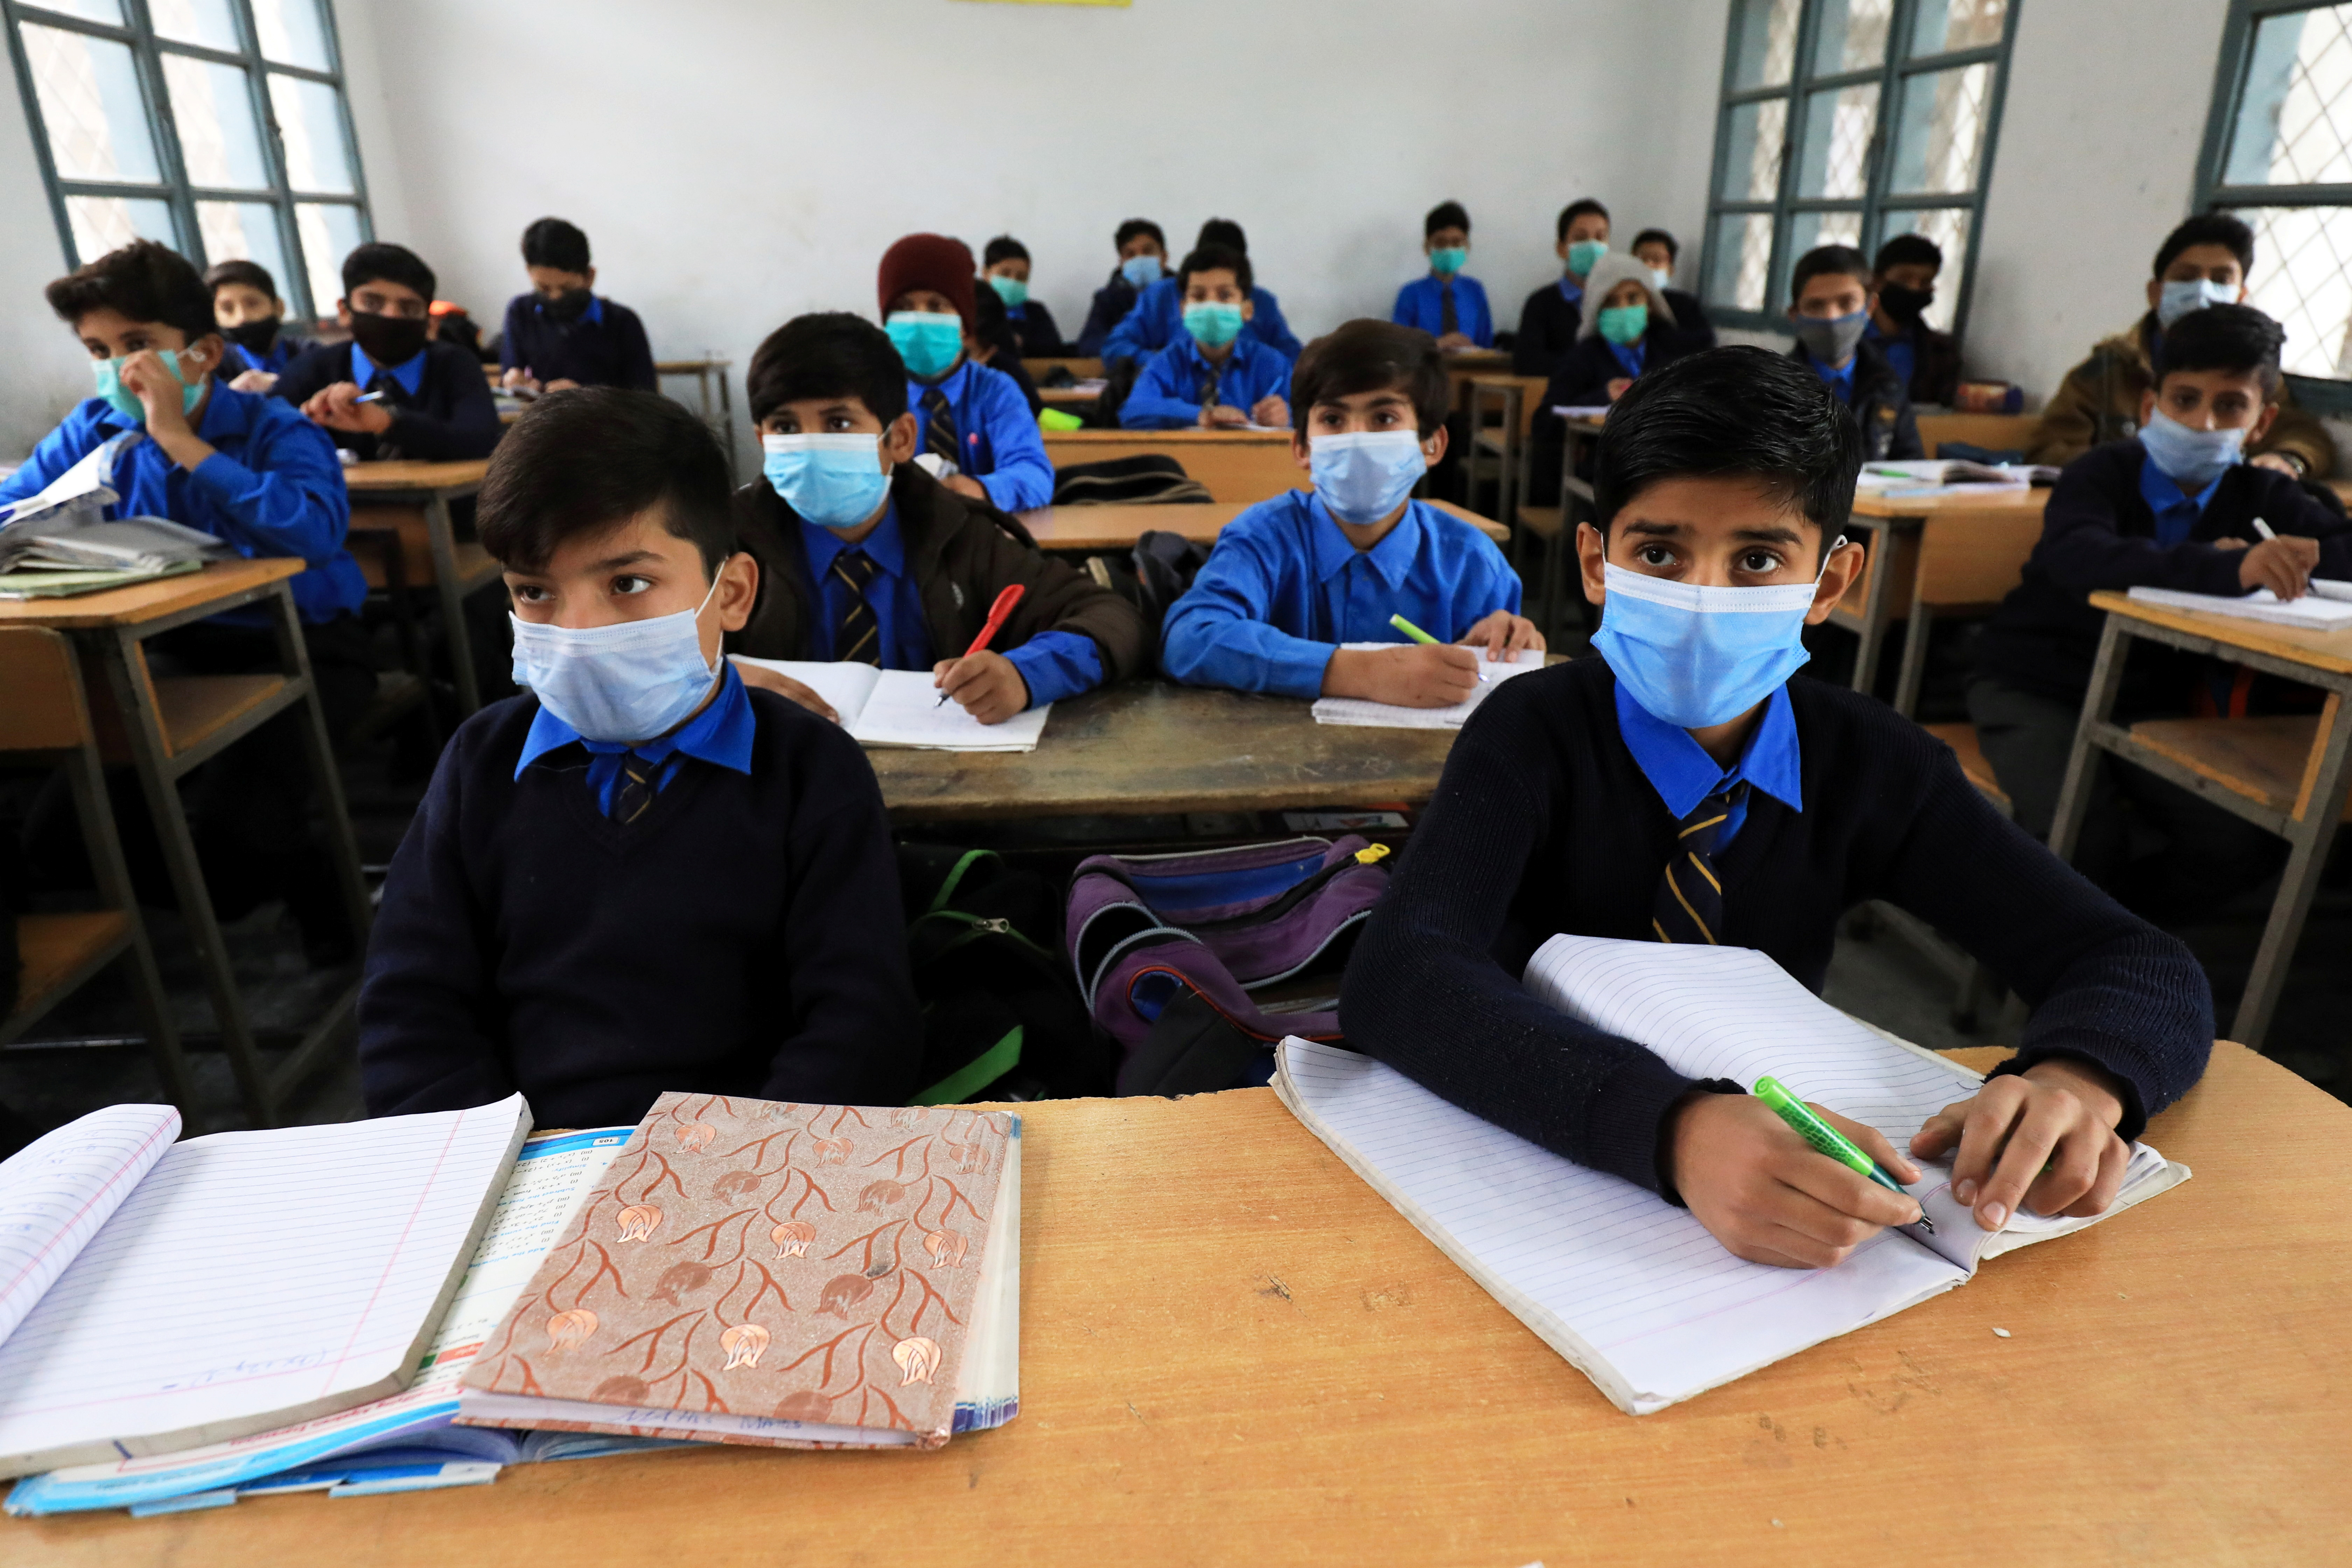 Students wear protective masks as they attend a class at school as the outbreak of the coronavirus disease (COVID-19) continues, in Peshawar, Pakistan November 23, 2020. REUTERS/Fayaz Aziz